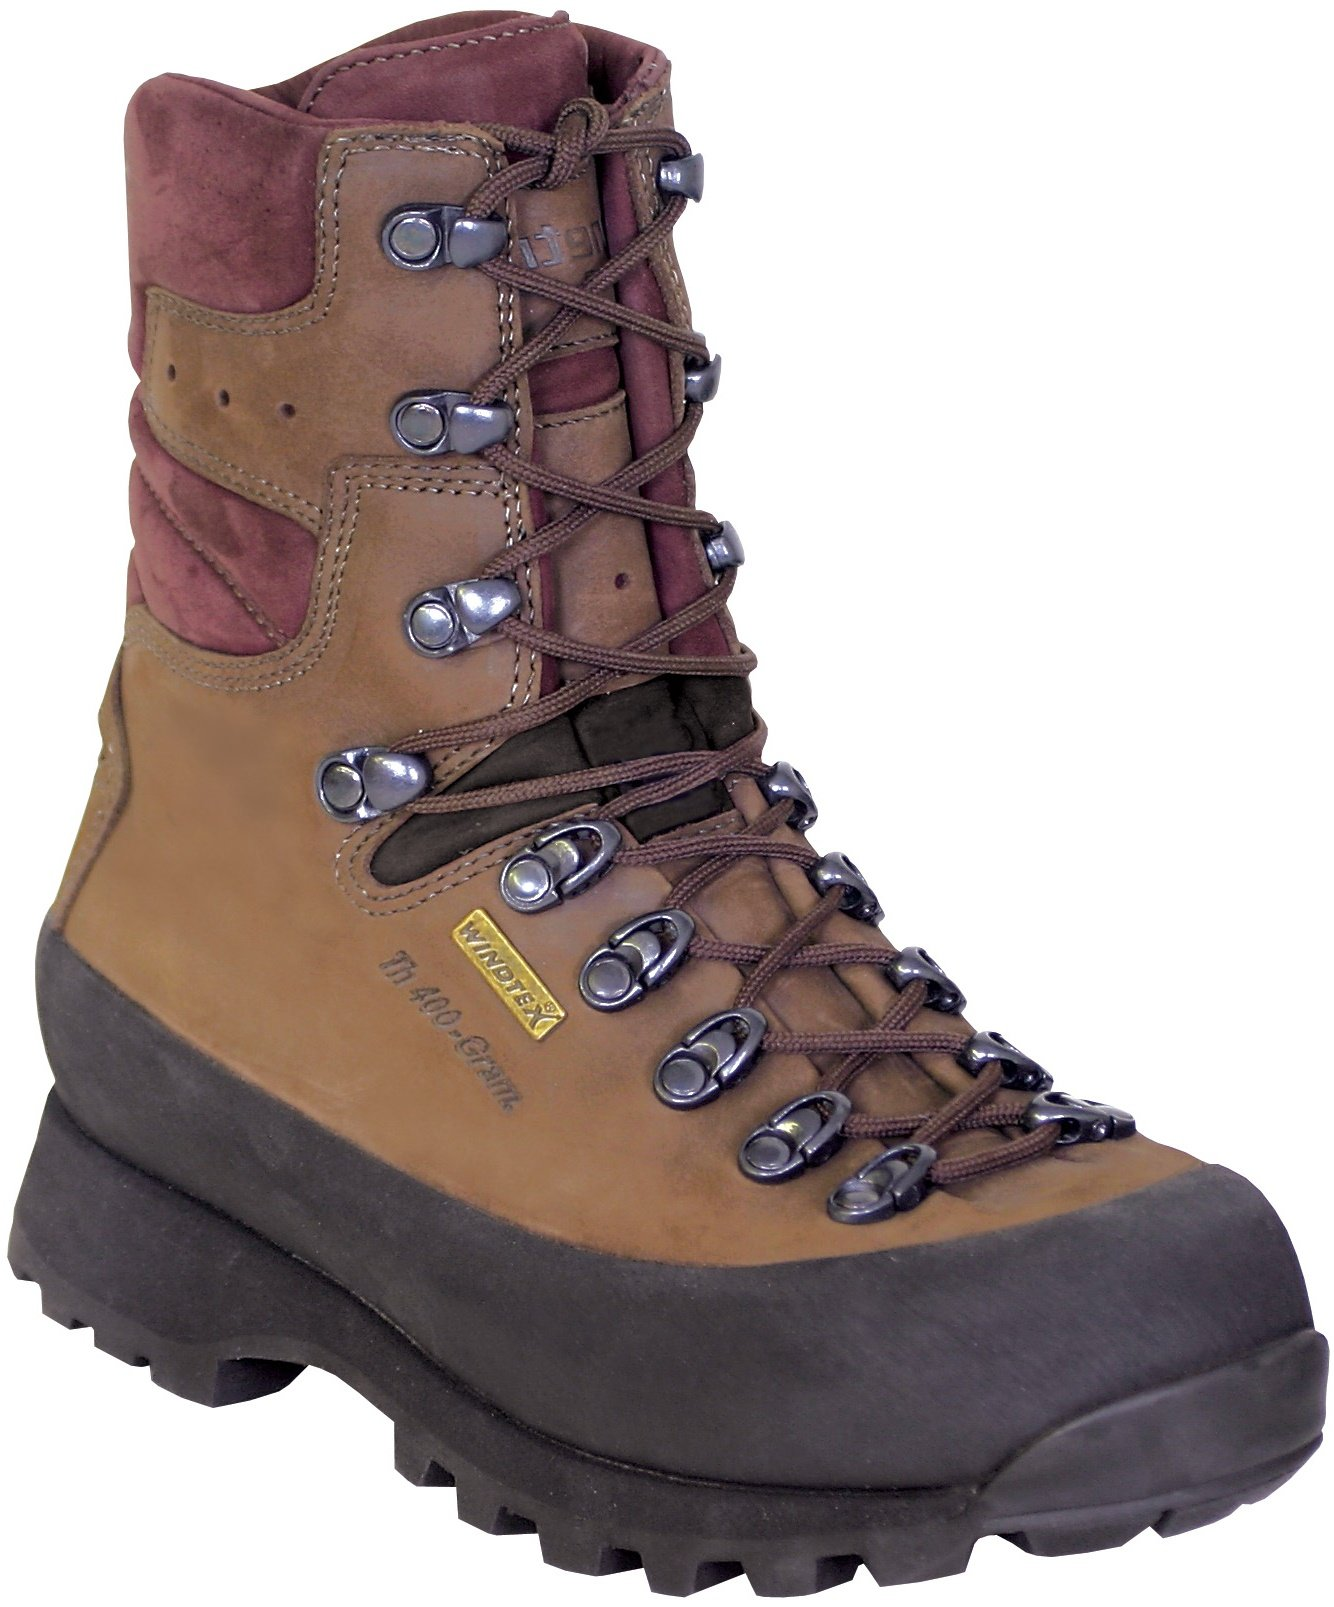 Kenetrek Women's Women's Mountain Extreme Insulated Hunting Boot,Brown,9 M US